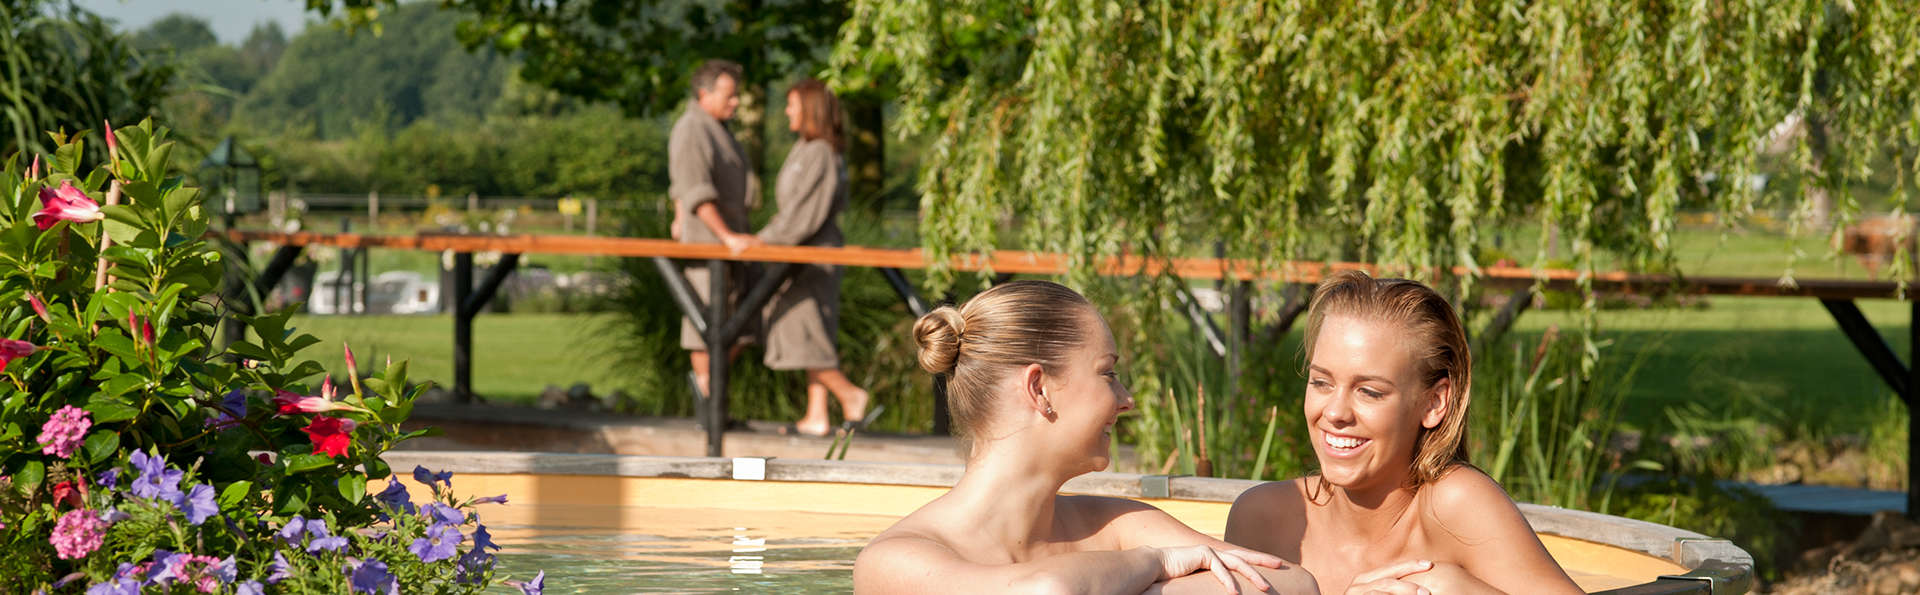 Pure ontspanning in wellnessresort de Zwaluwhoeve